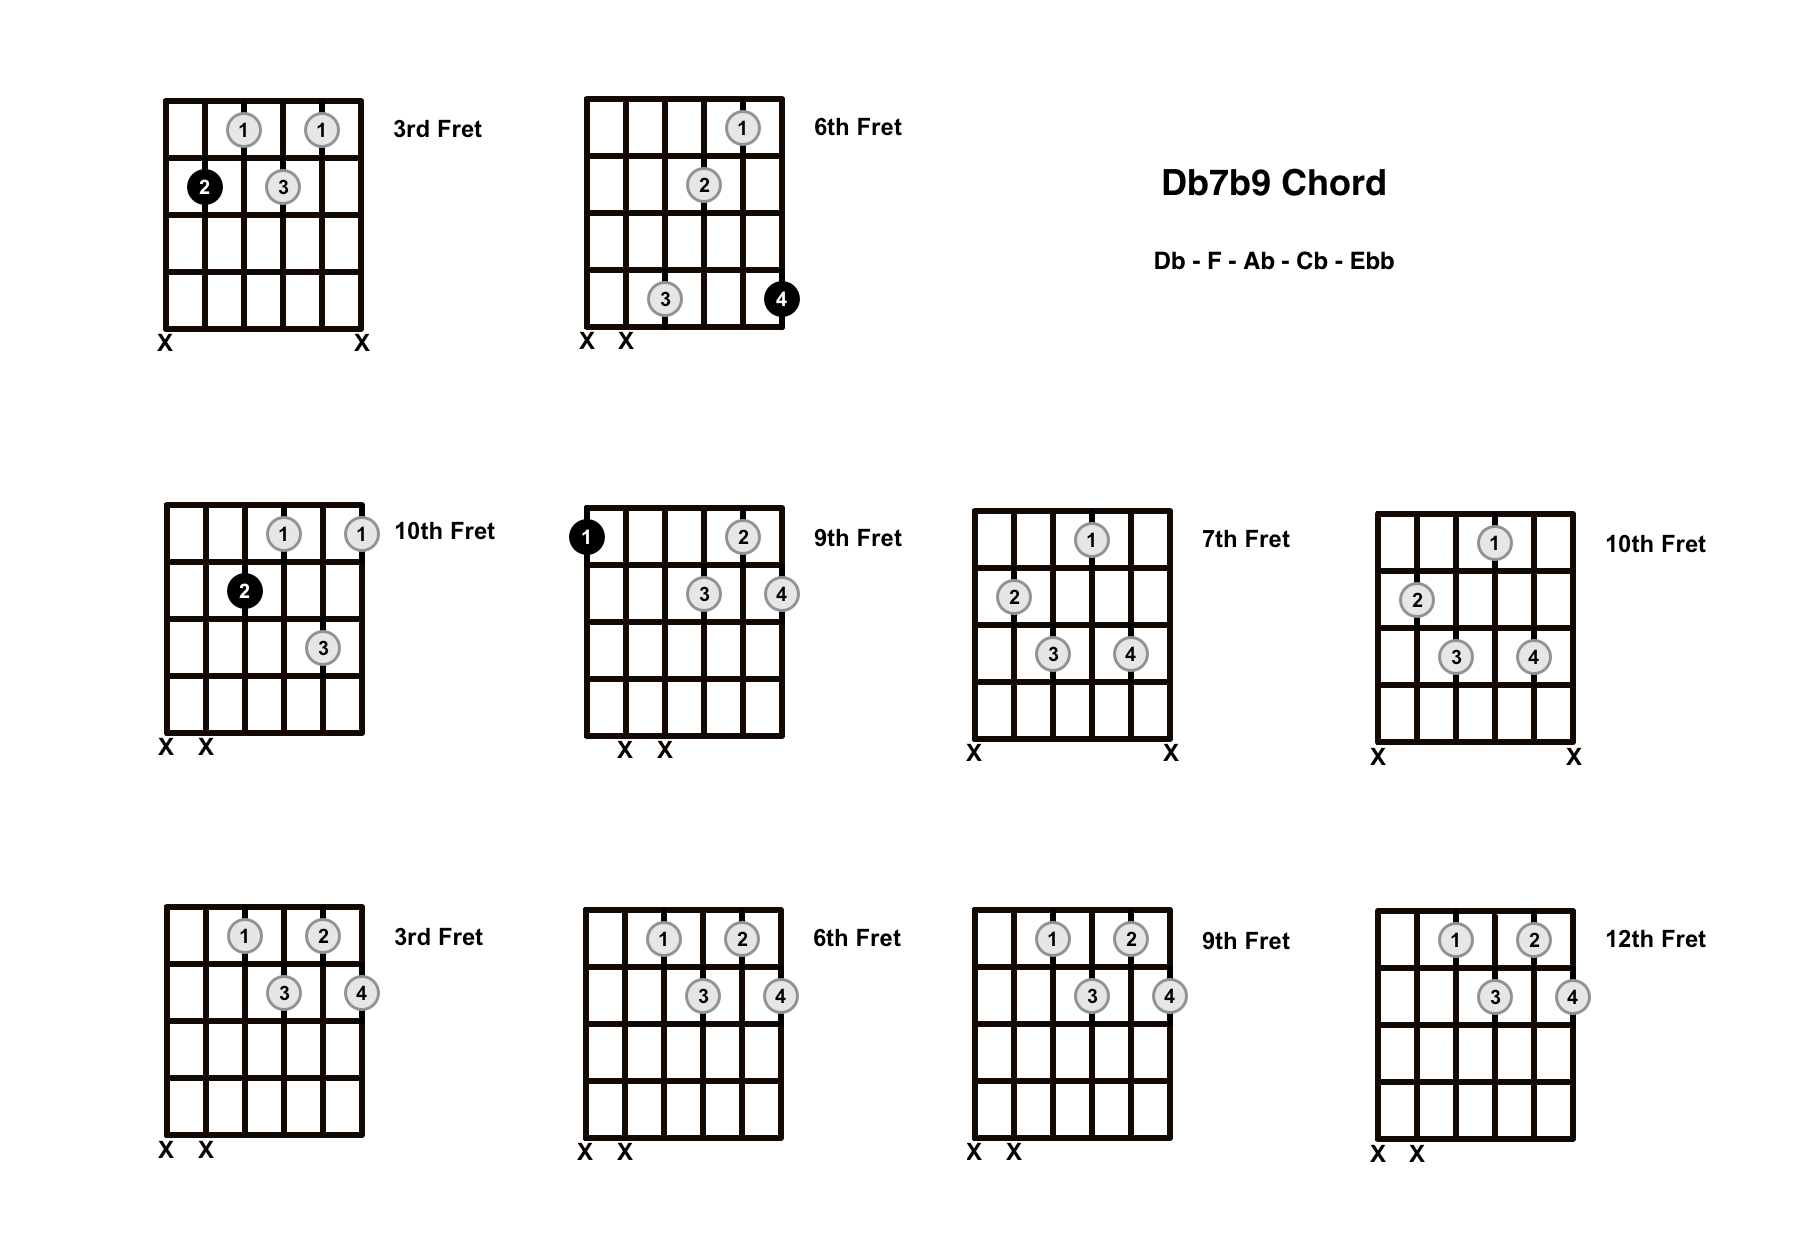 Db7b9 Chord On The Guitar (D Flat 7 Flat 9) – Diagrams, Finger Positions and Theory